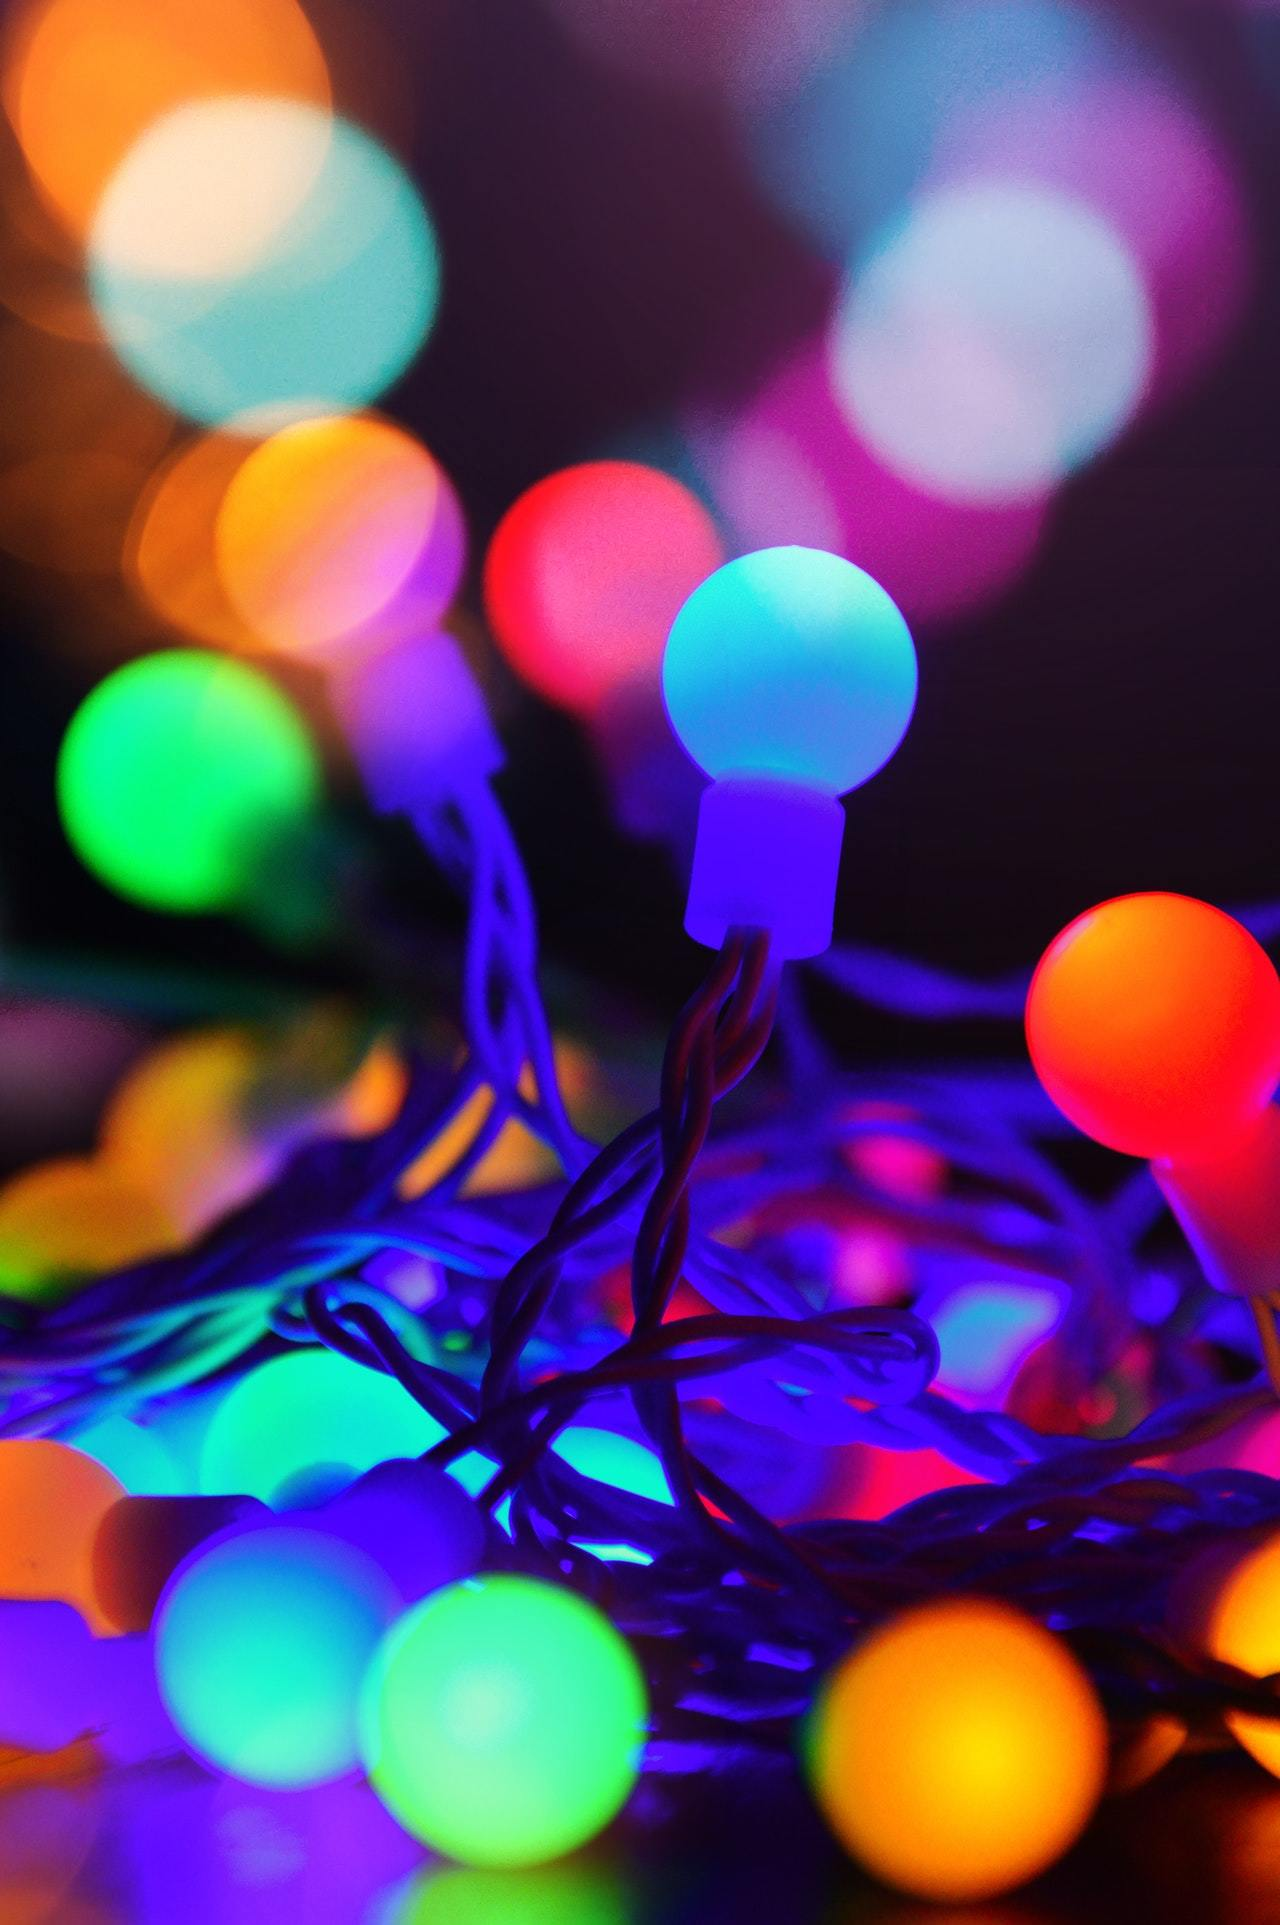 christmas-lights-1400136_med.jpg - 156.68 kB